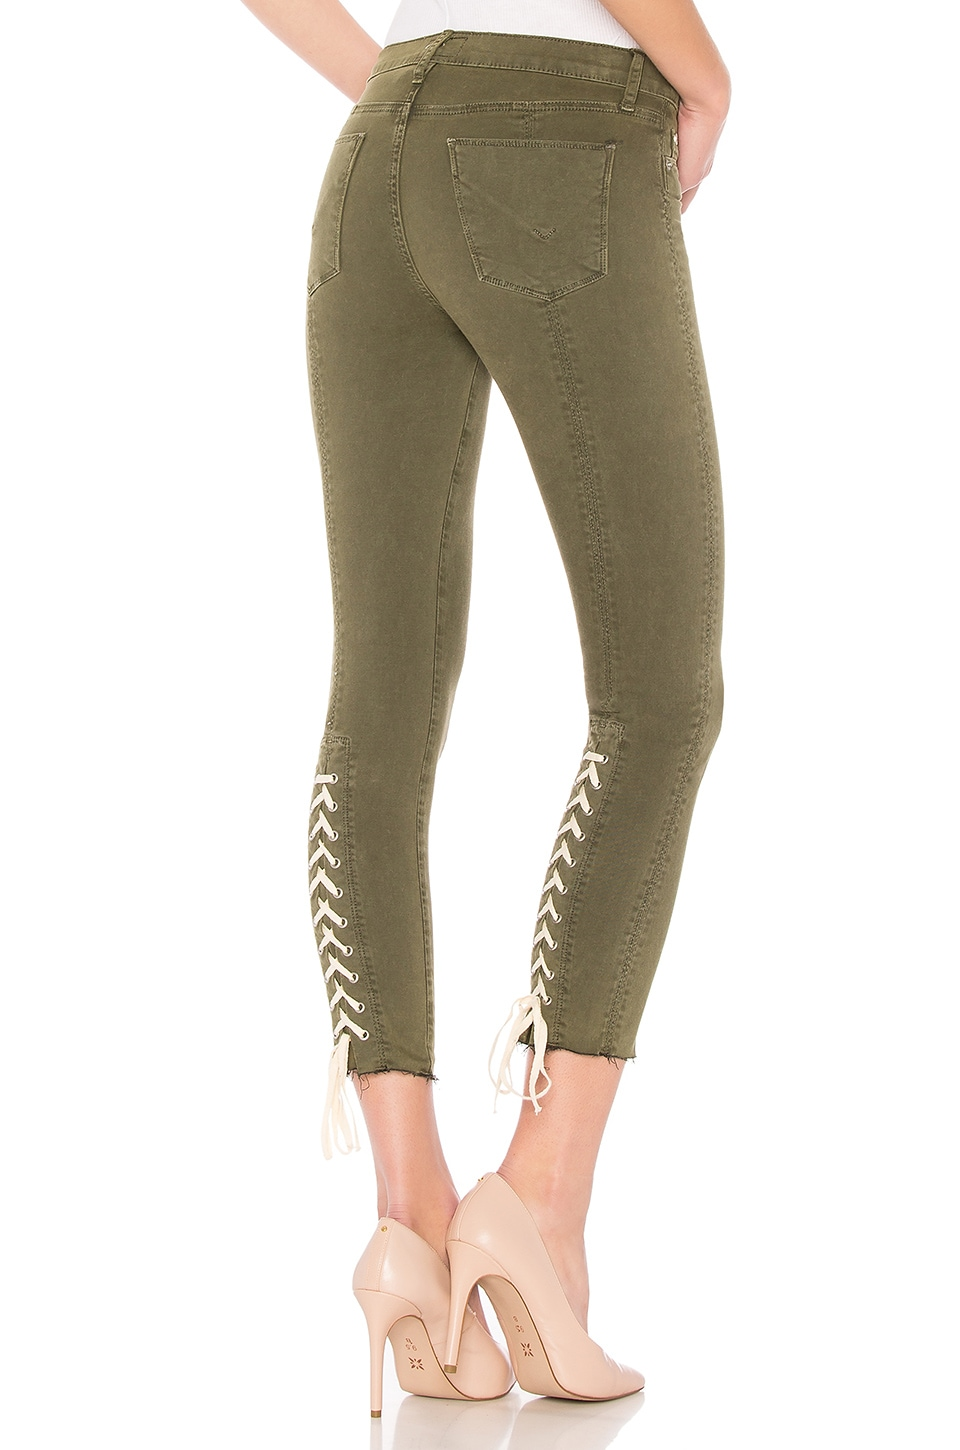 Nico Lace-Up Cropped Skinny Pants In Crushed Olive